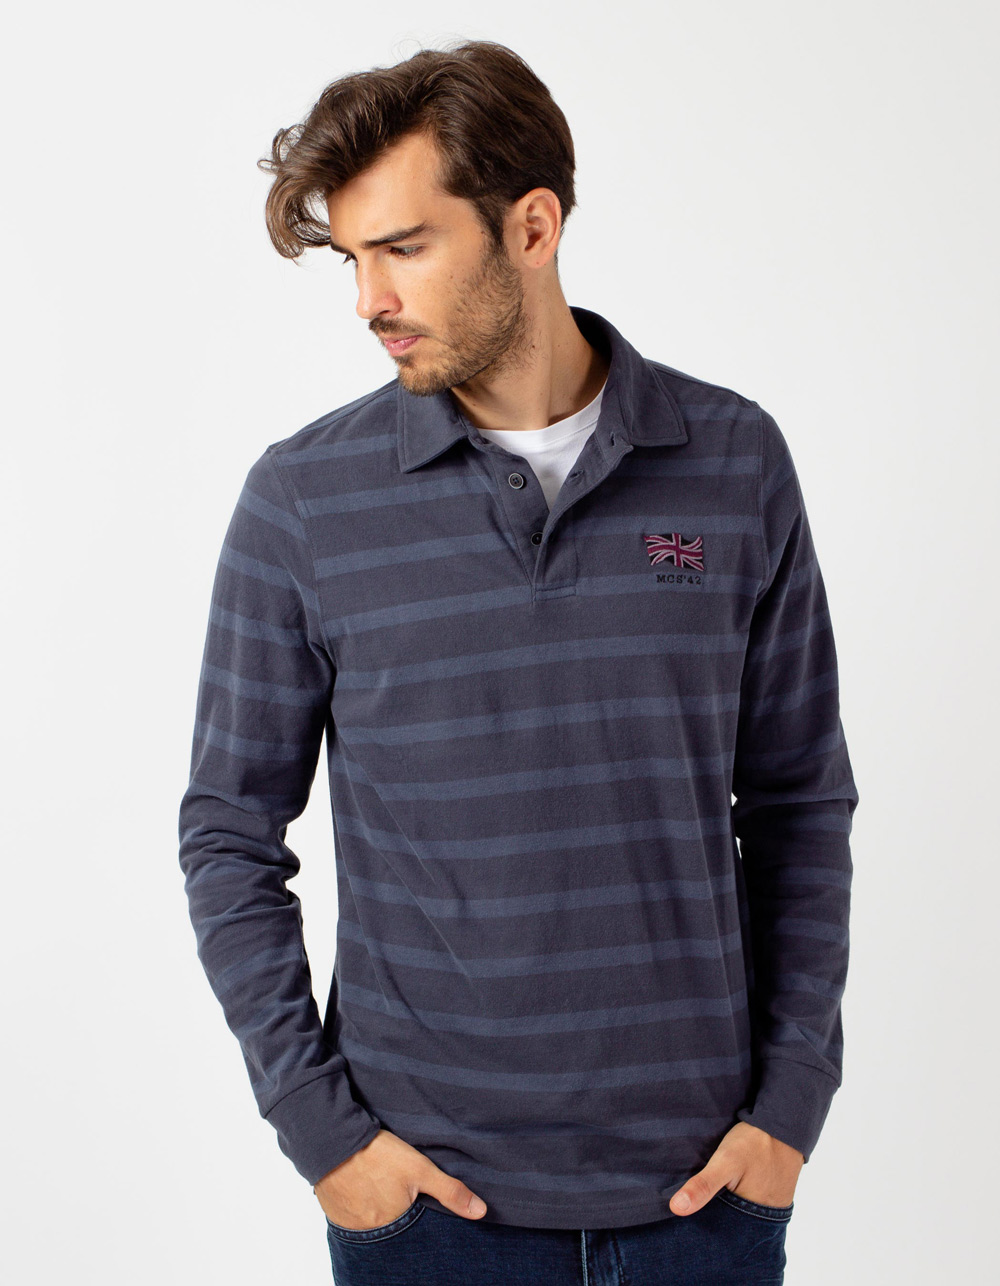 Navy blue striped long sleeve polo